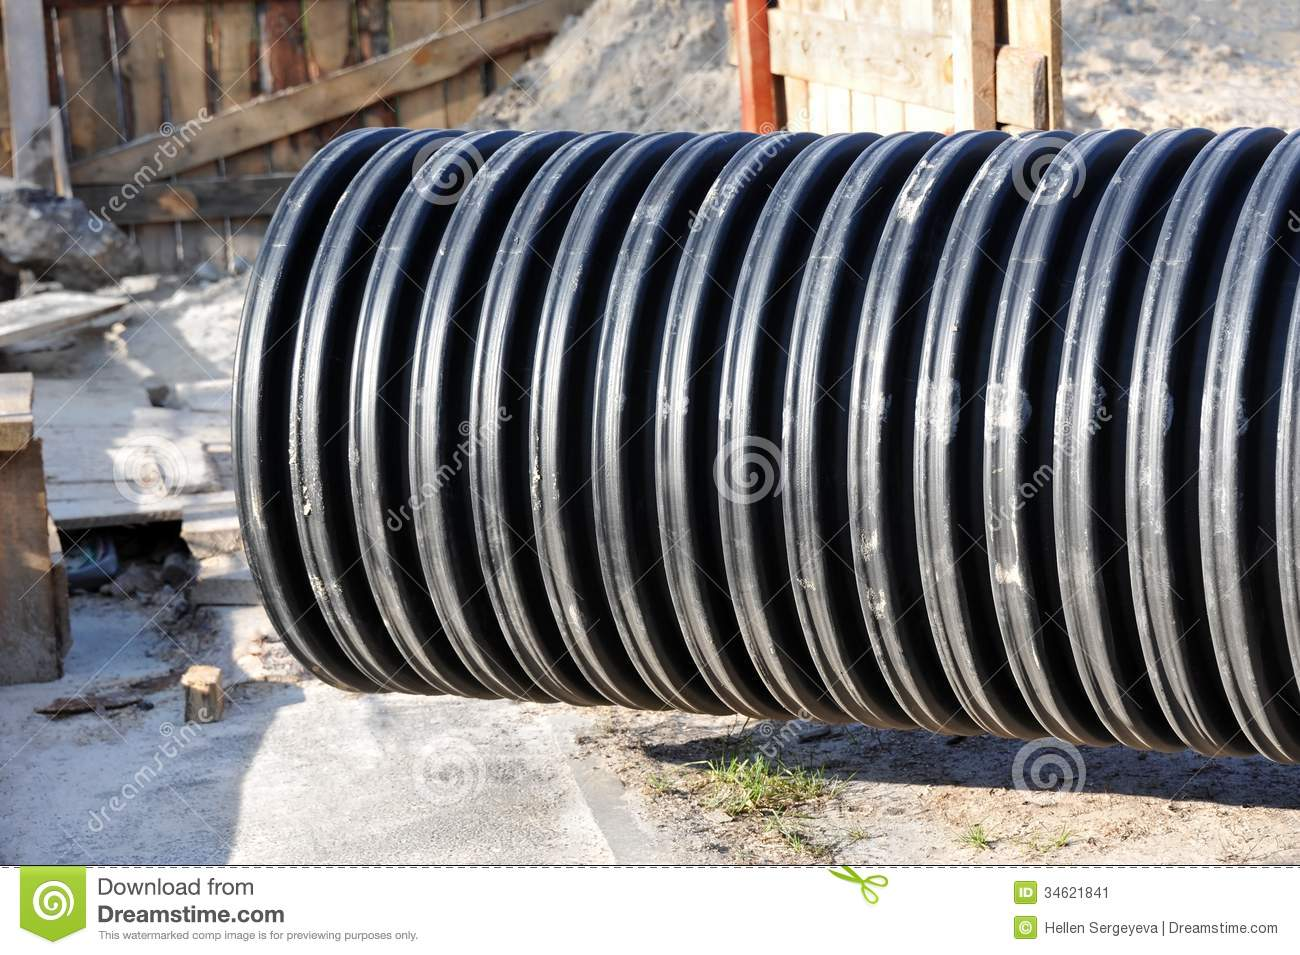 Pvc pipe stock image